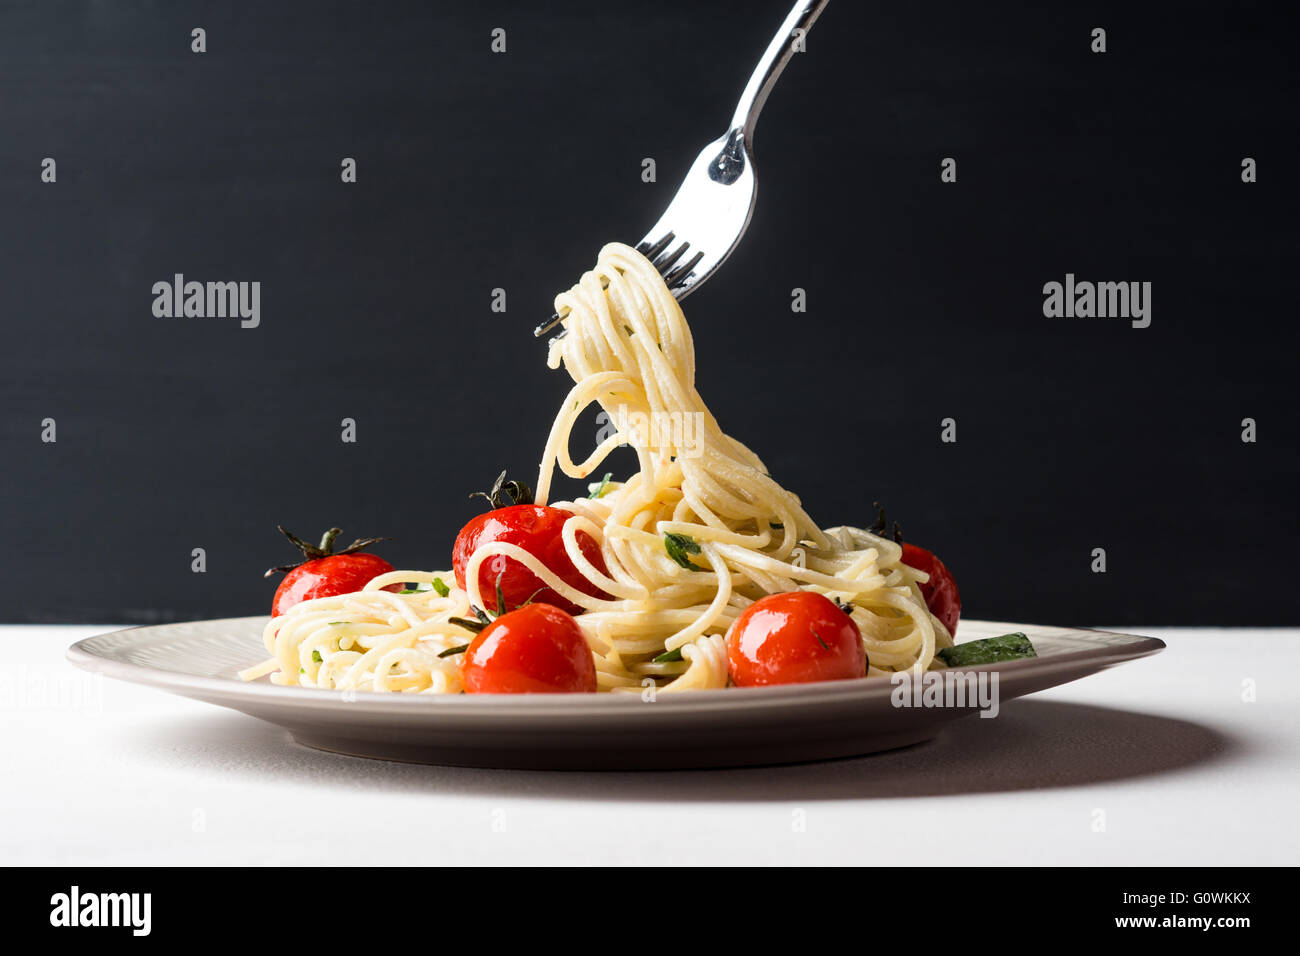 Pasta with cherry tomatoes. Selective focus. - Stock Image